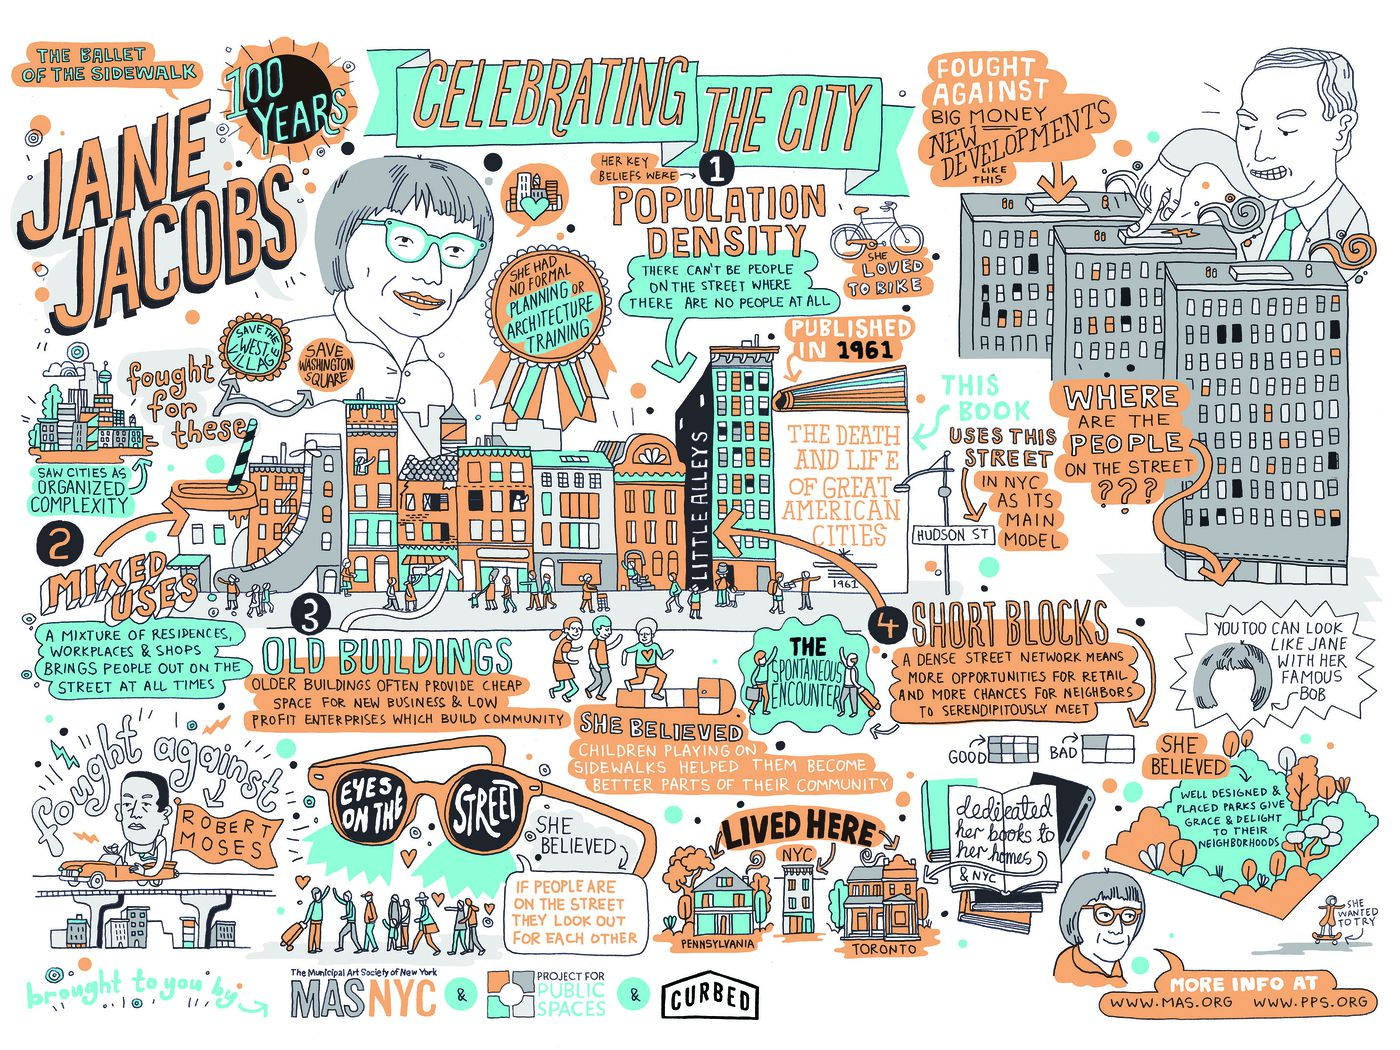 celebrating jane jacobs curbed